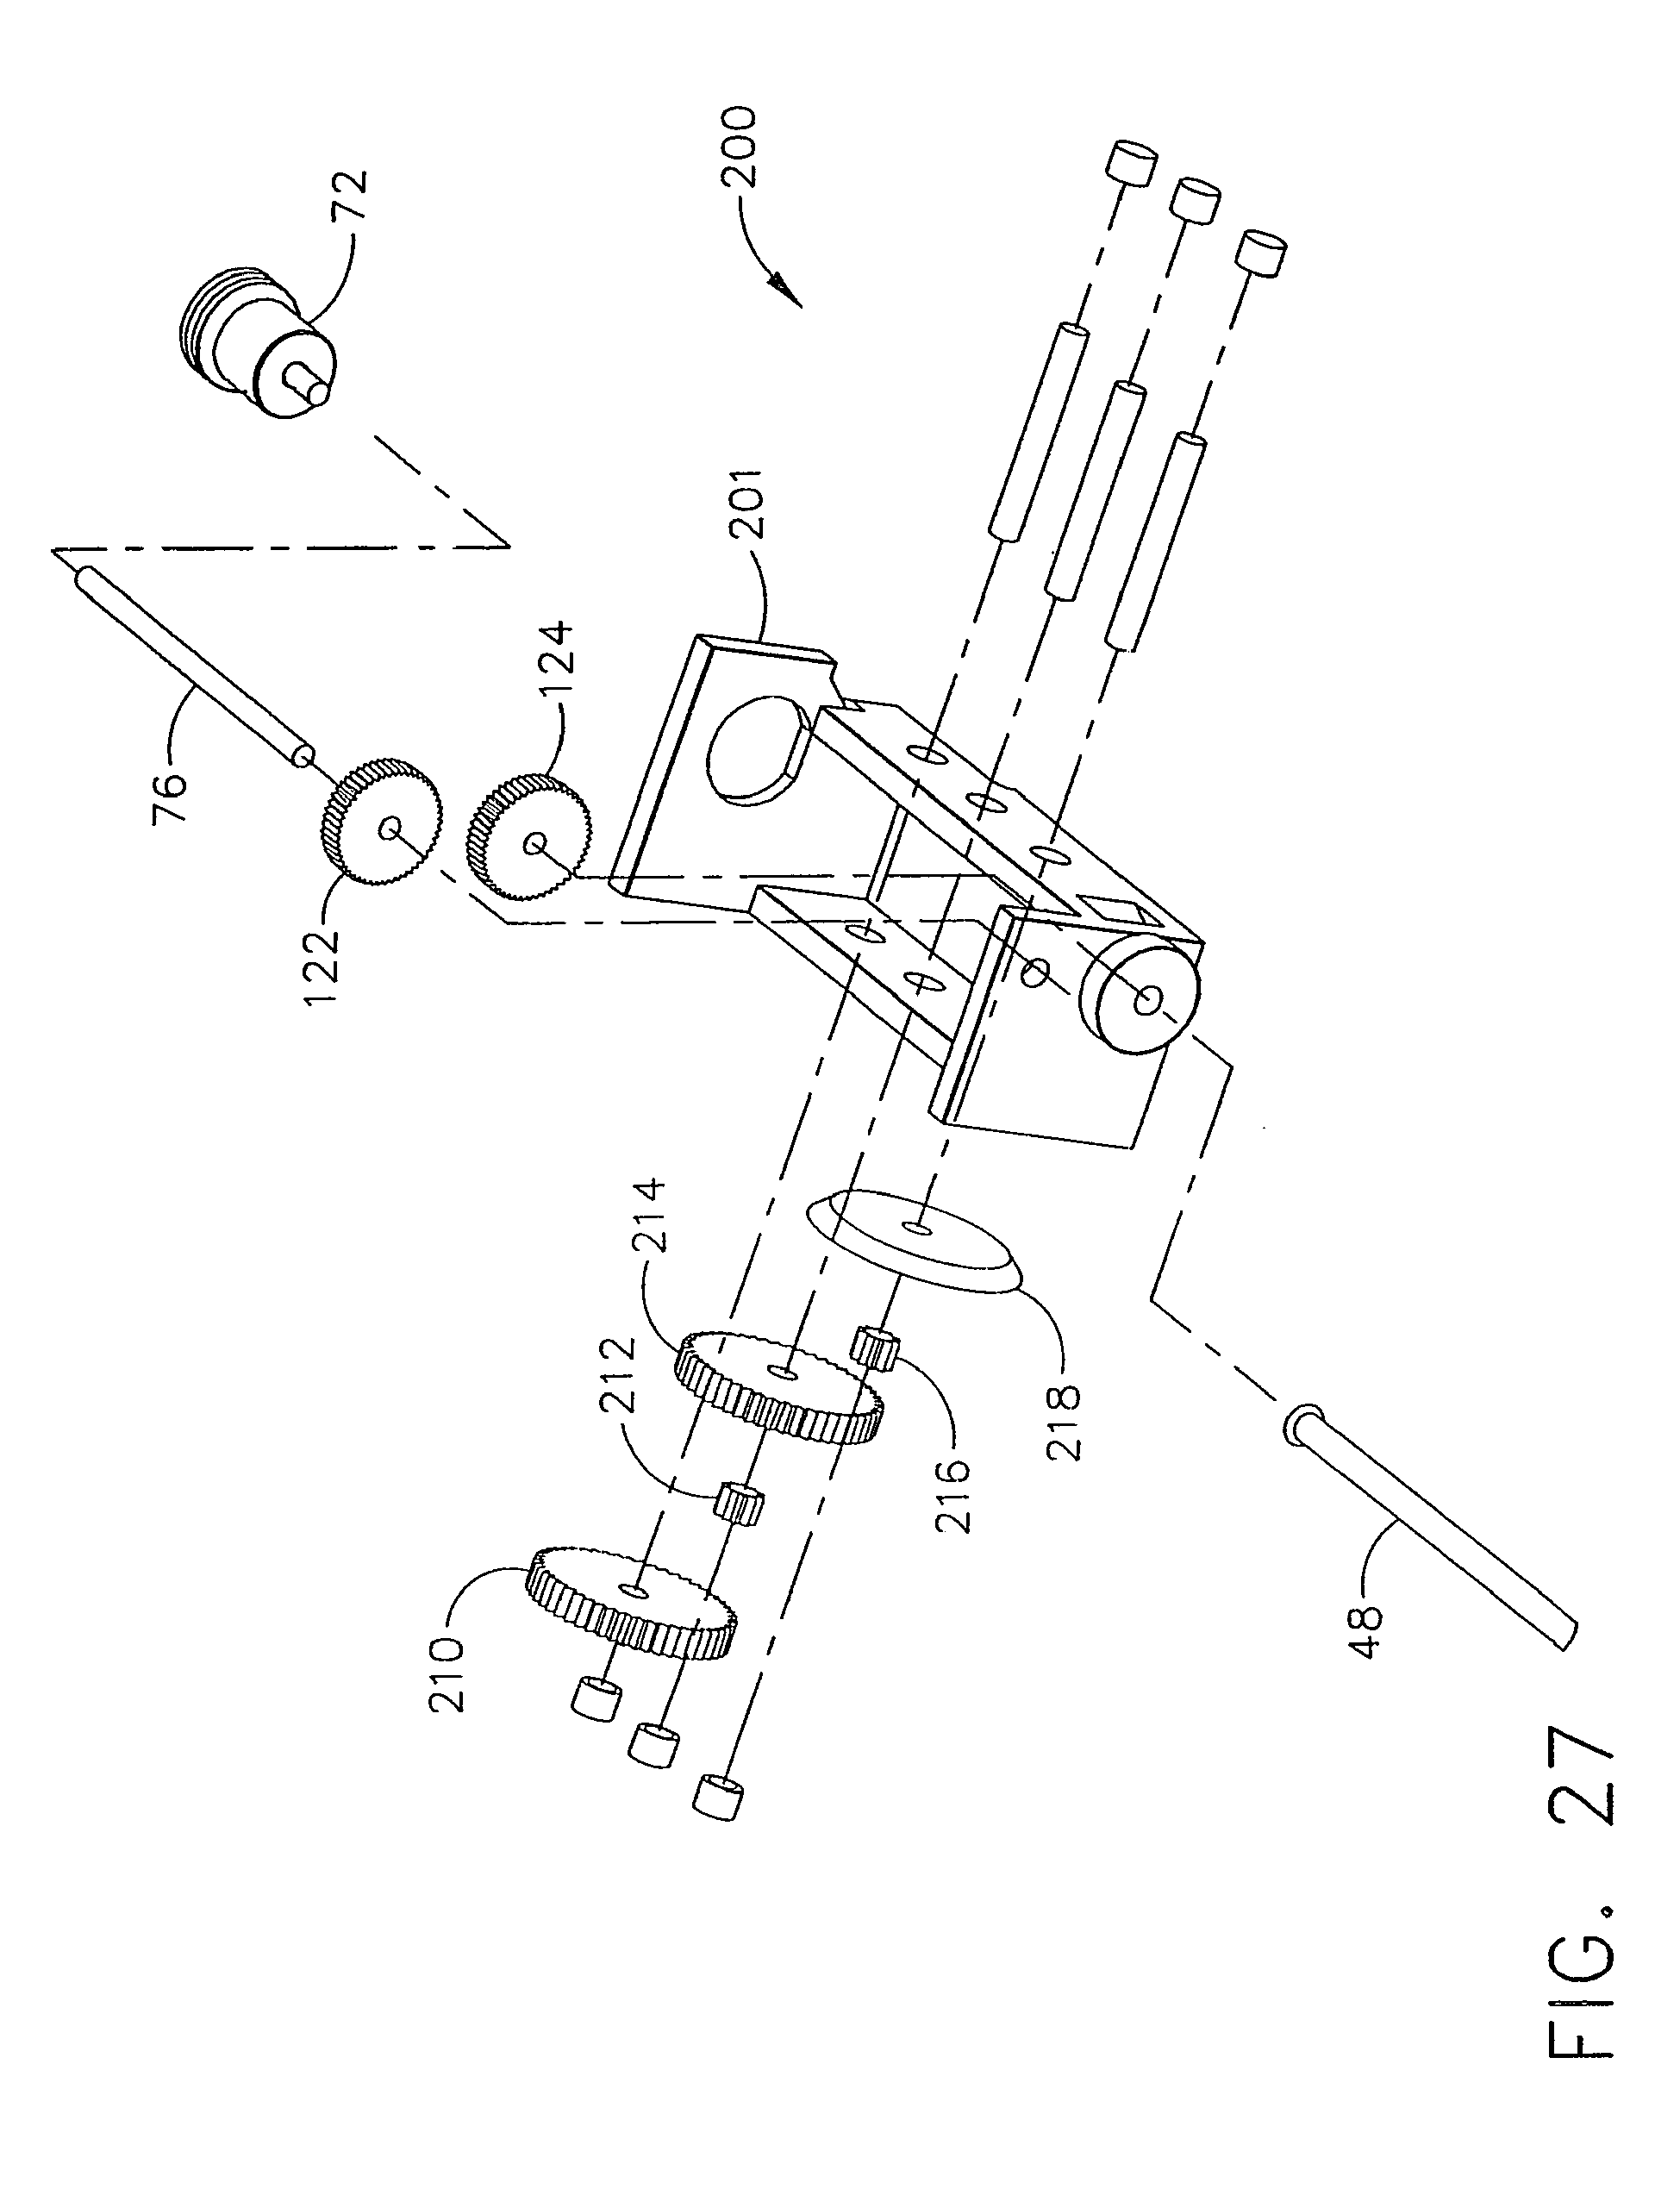 Ep1813201a1 surgical instrument having recording capabilities patents